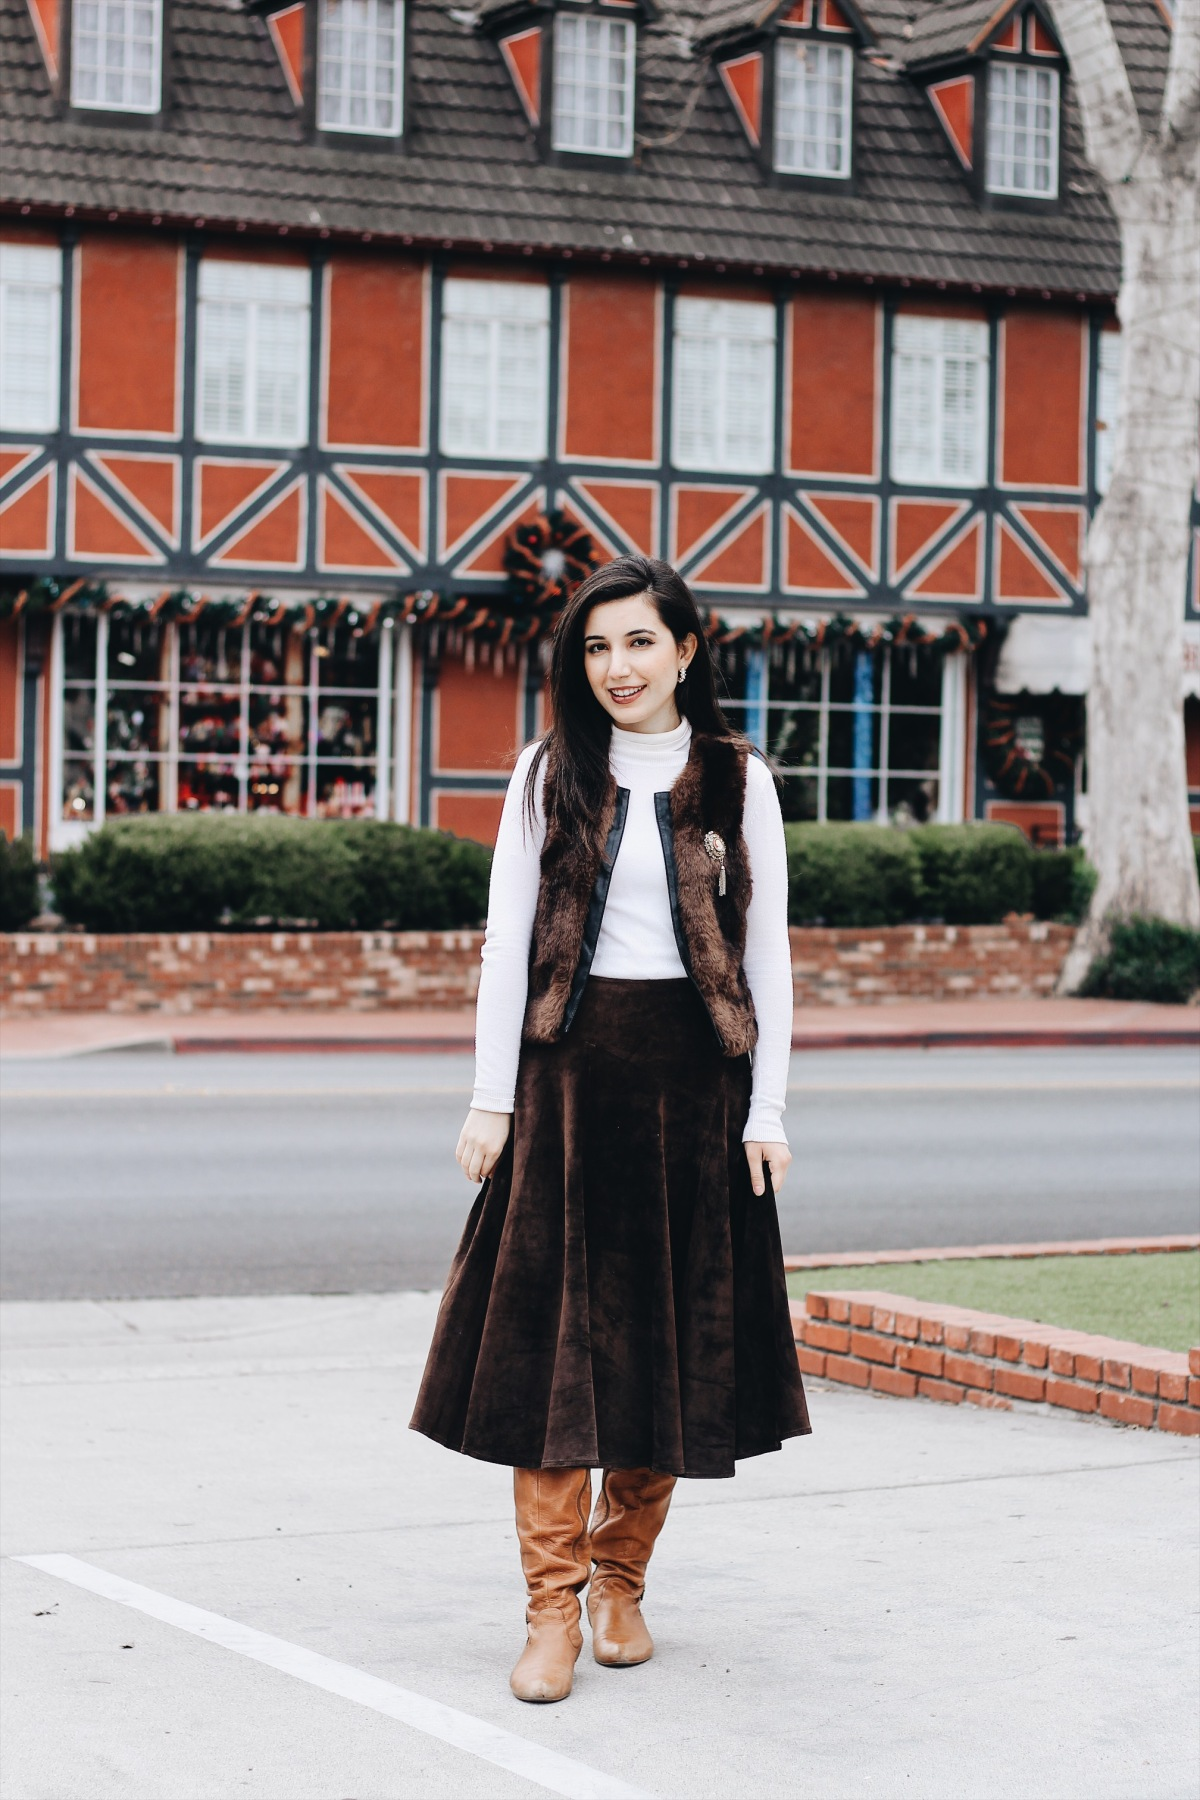 Solvang, CA, ALDO boots, fur vest, ootd, outfit of the day, California, CA, suede skirt, Jones New York, cameo brooch, white turtleneck, European, European outfit, lookbook, fashion blogger, travel